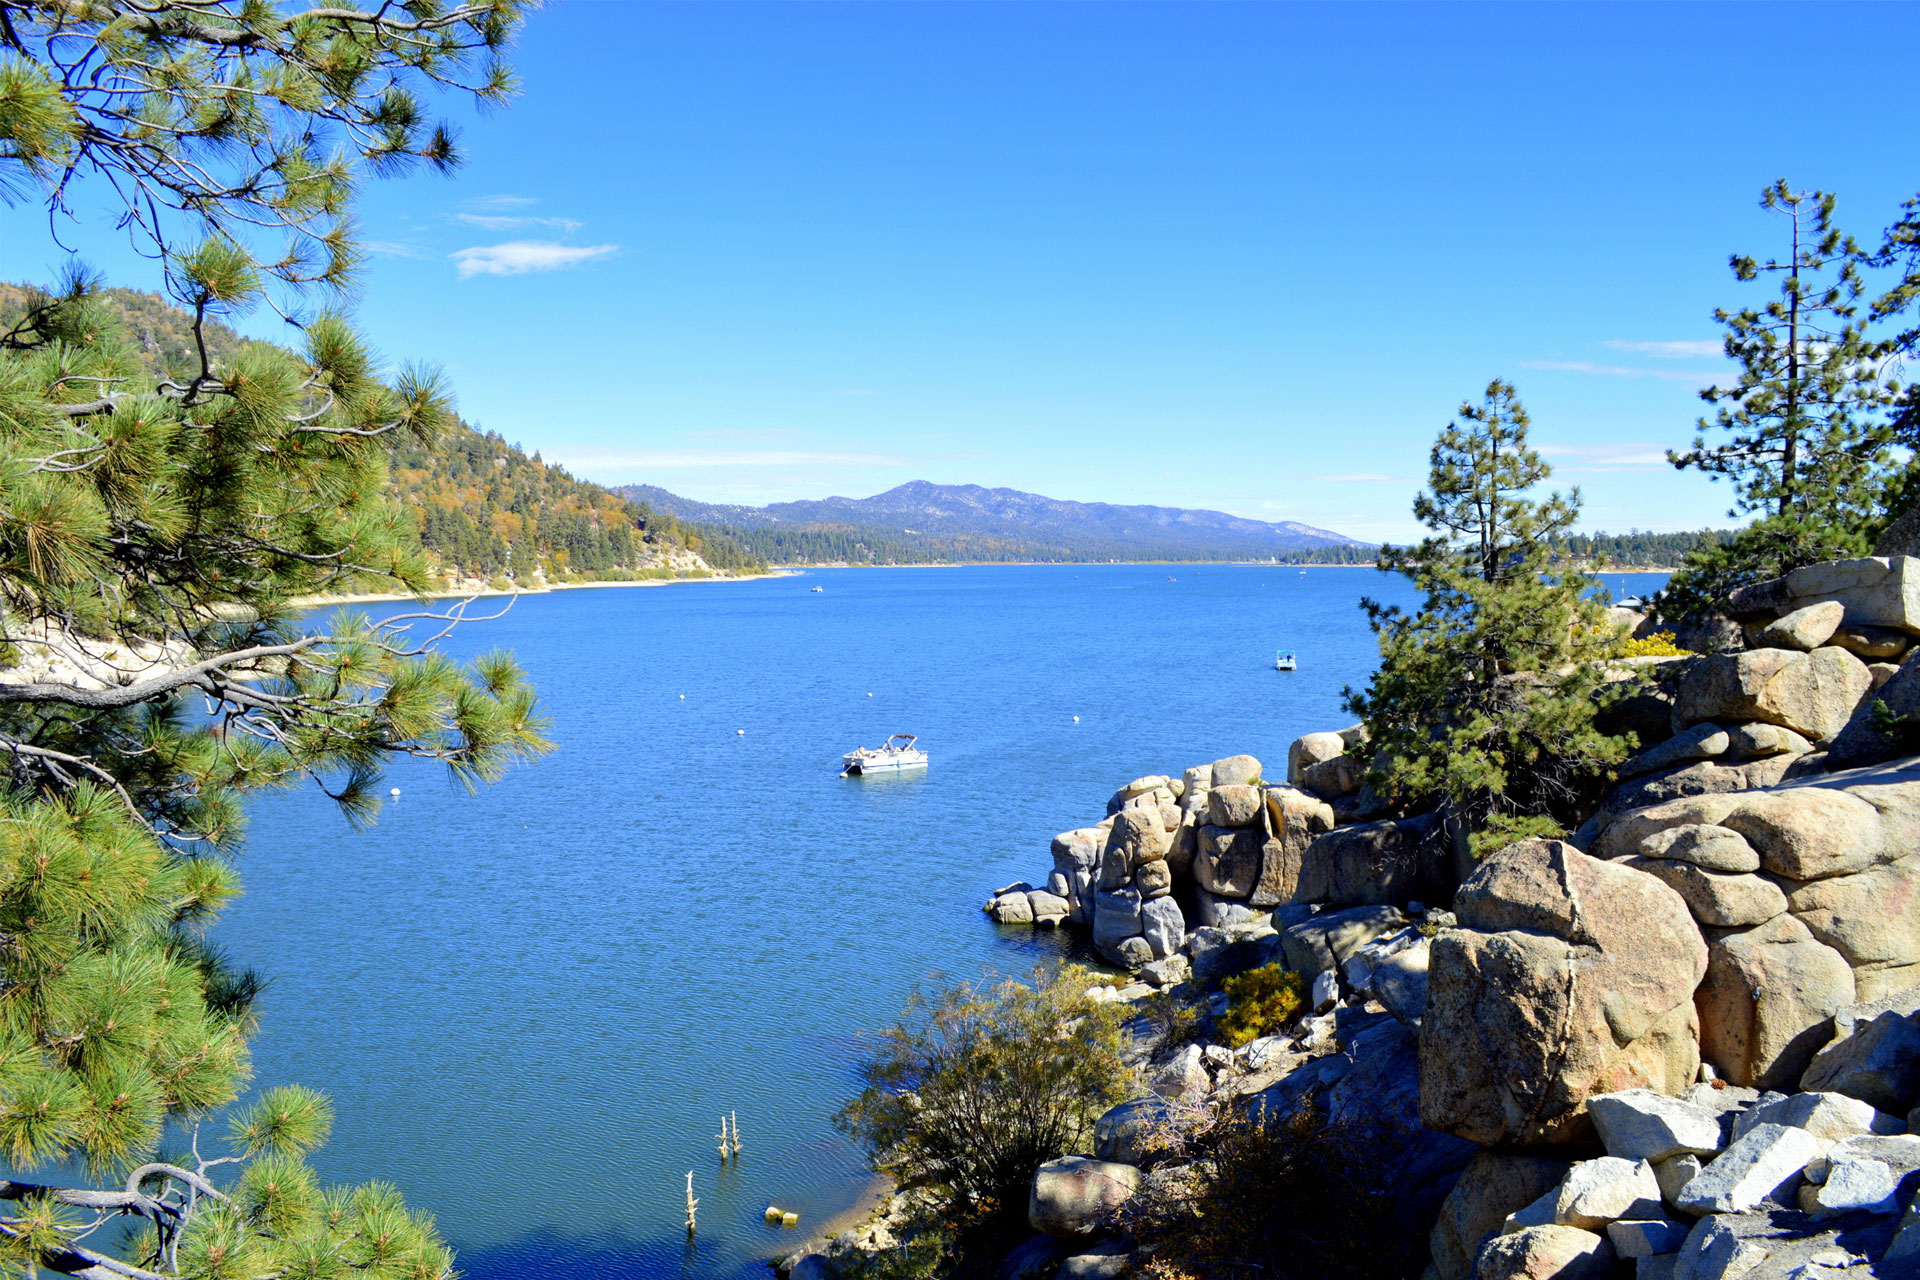 Big Bear Lake, California; Courtesy of divanov/Shutterstock.com